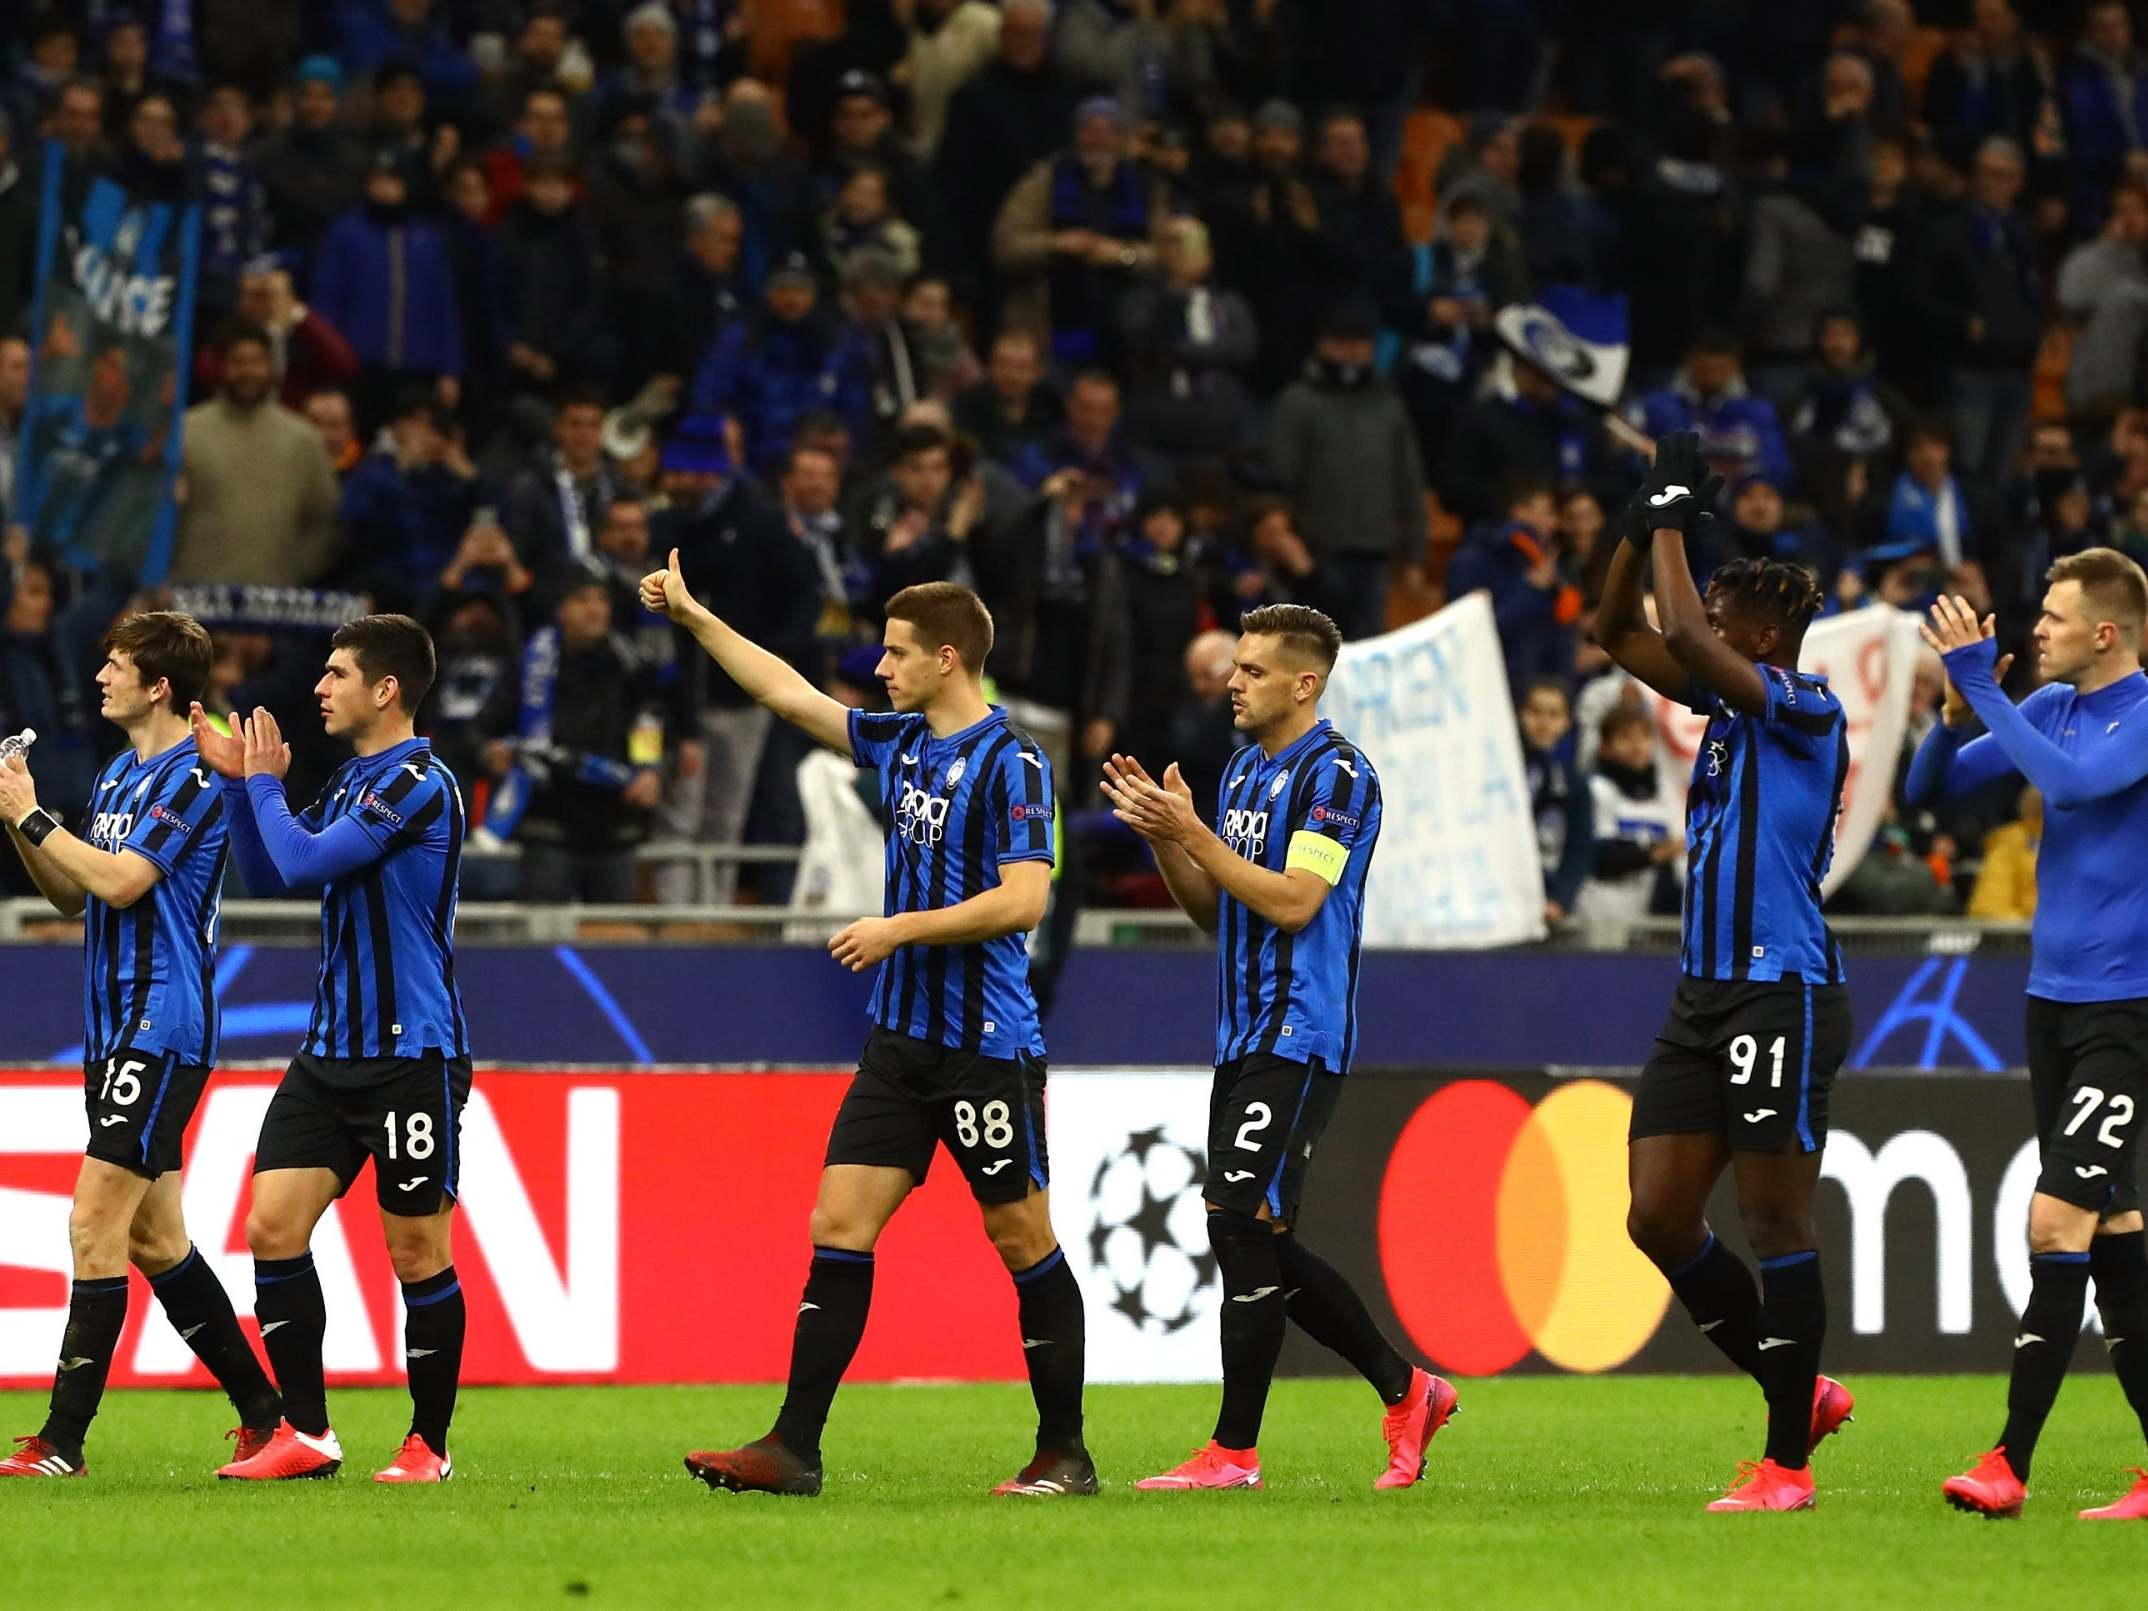 How to watch Atalanta vs PSG in the Champions League online and on TV tonight